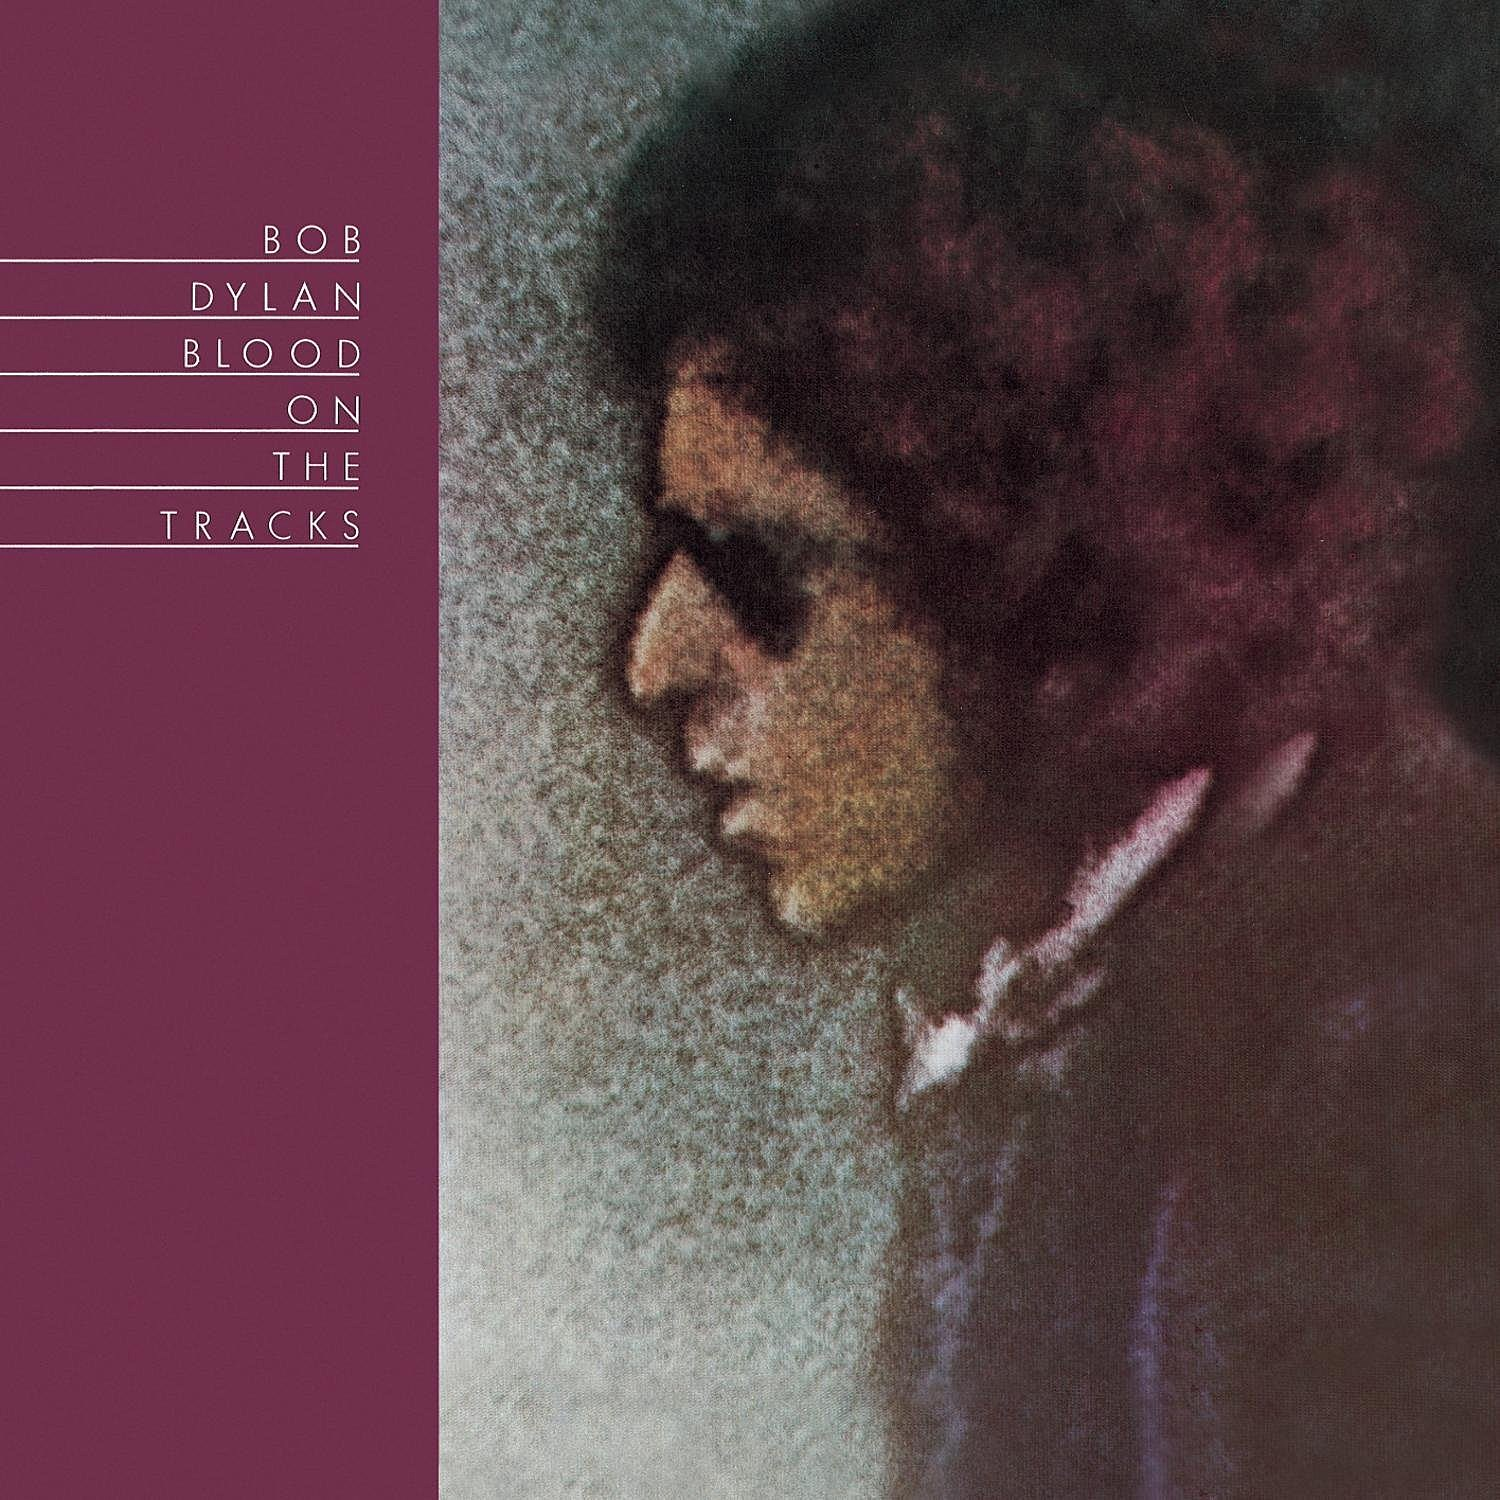 bob-dylan-blood-on-the-tracks